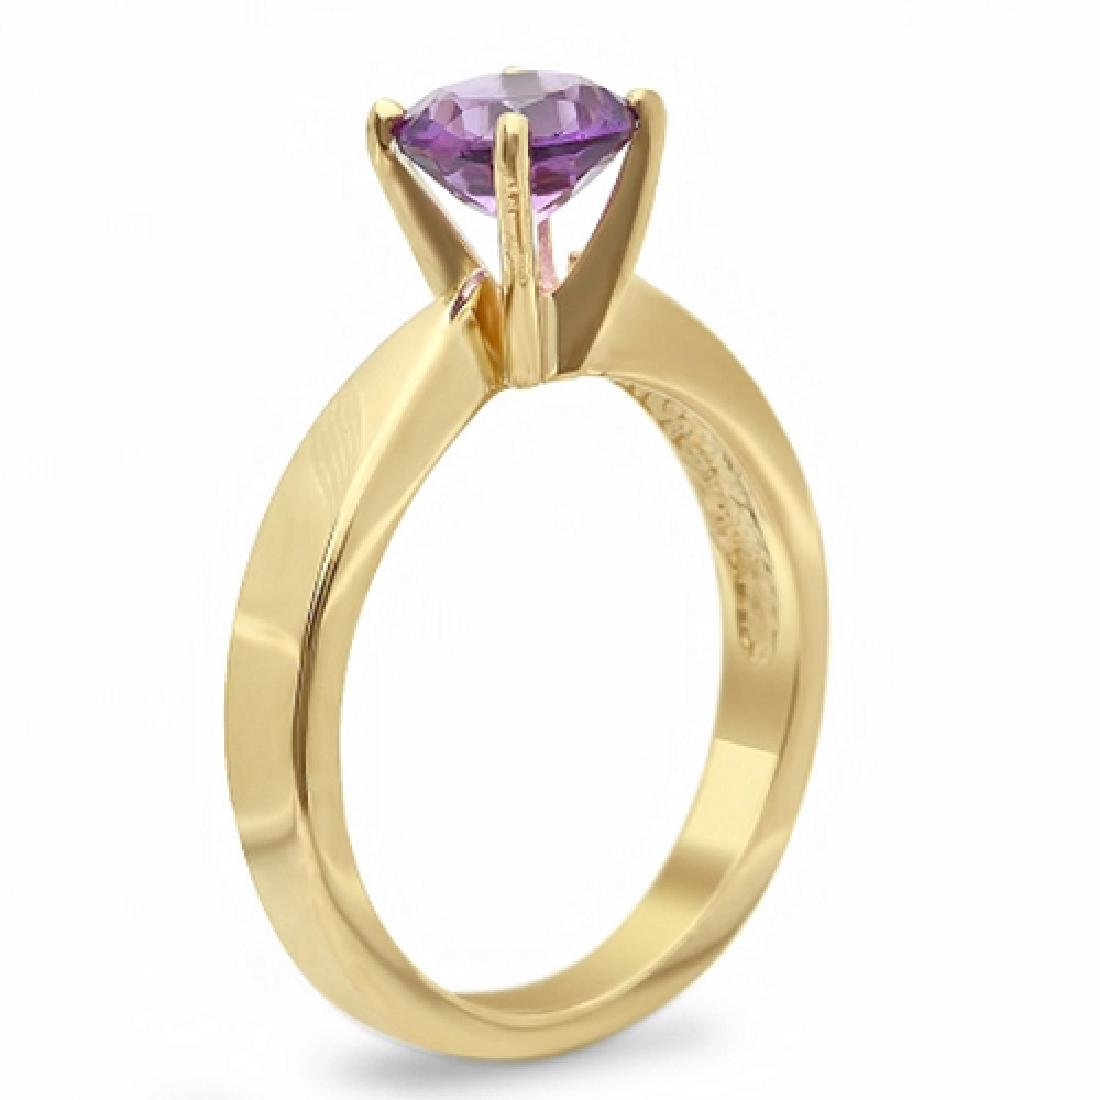 1.30 Carat Natural Amethyst 18K Solid Yellow Gold Ring - 2